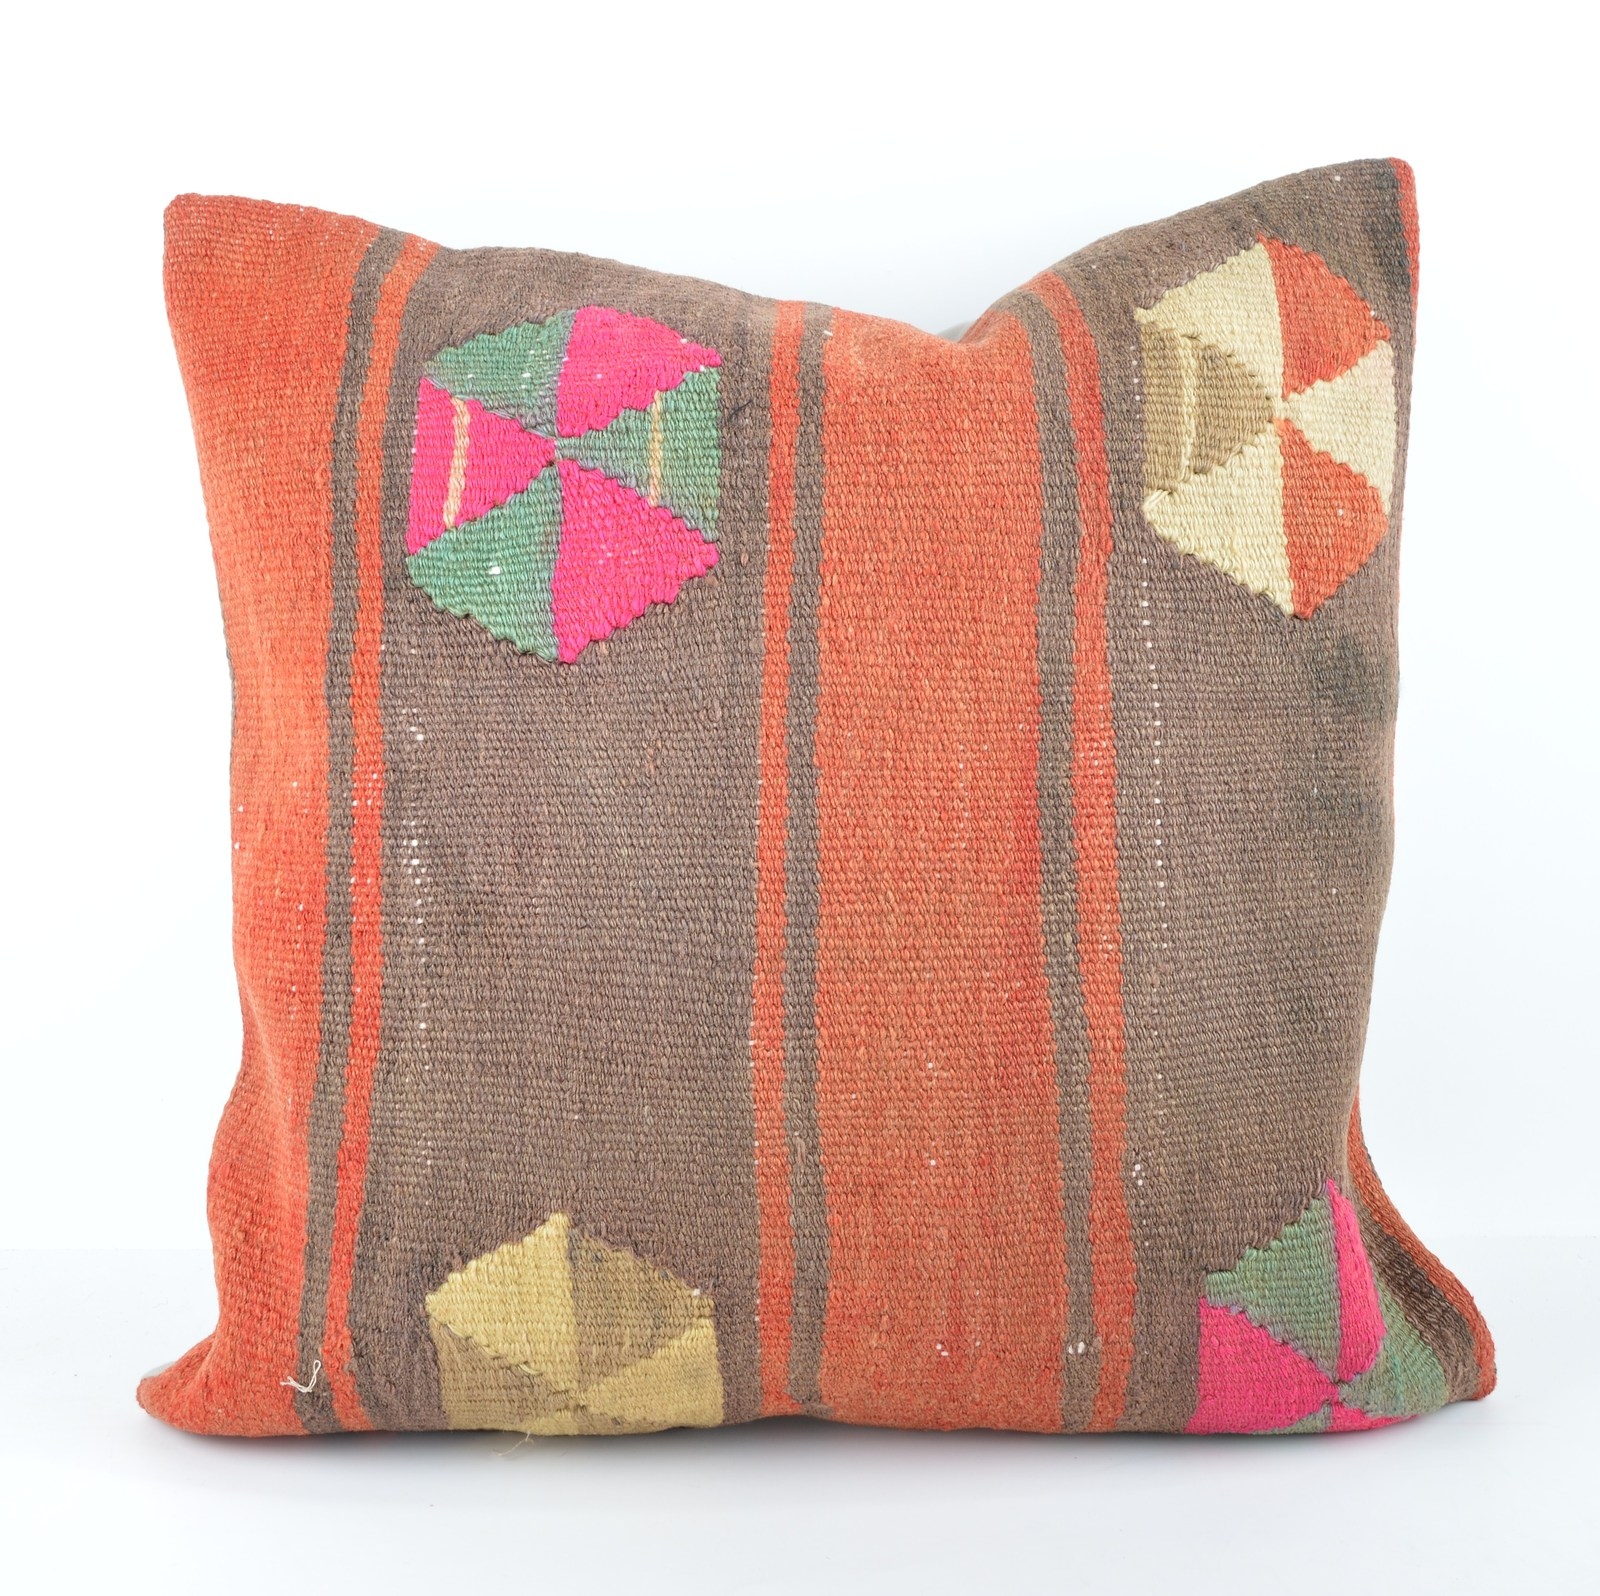 large kilim pillow 20x20 kilim cushion 50x50cm large pillow large throw pillow - Pillows